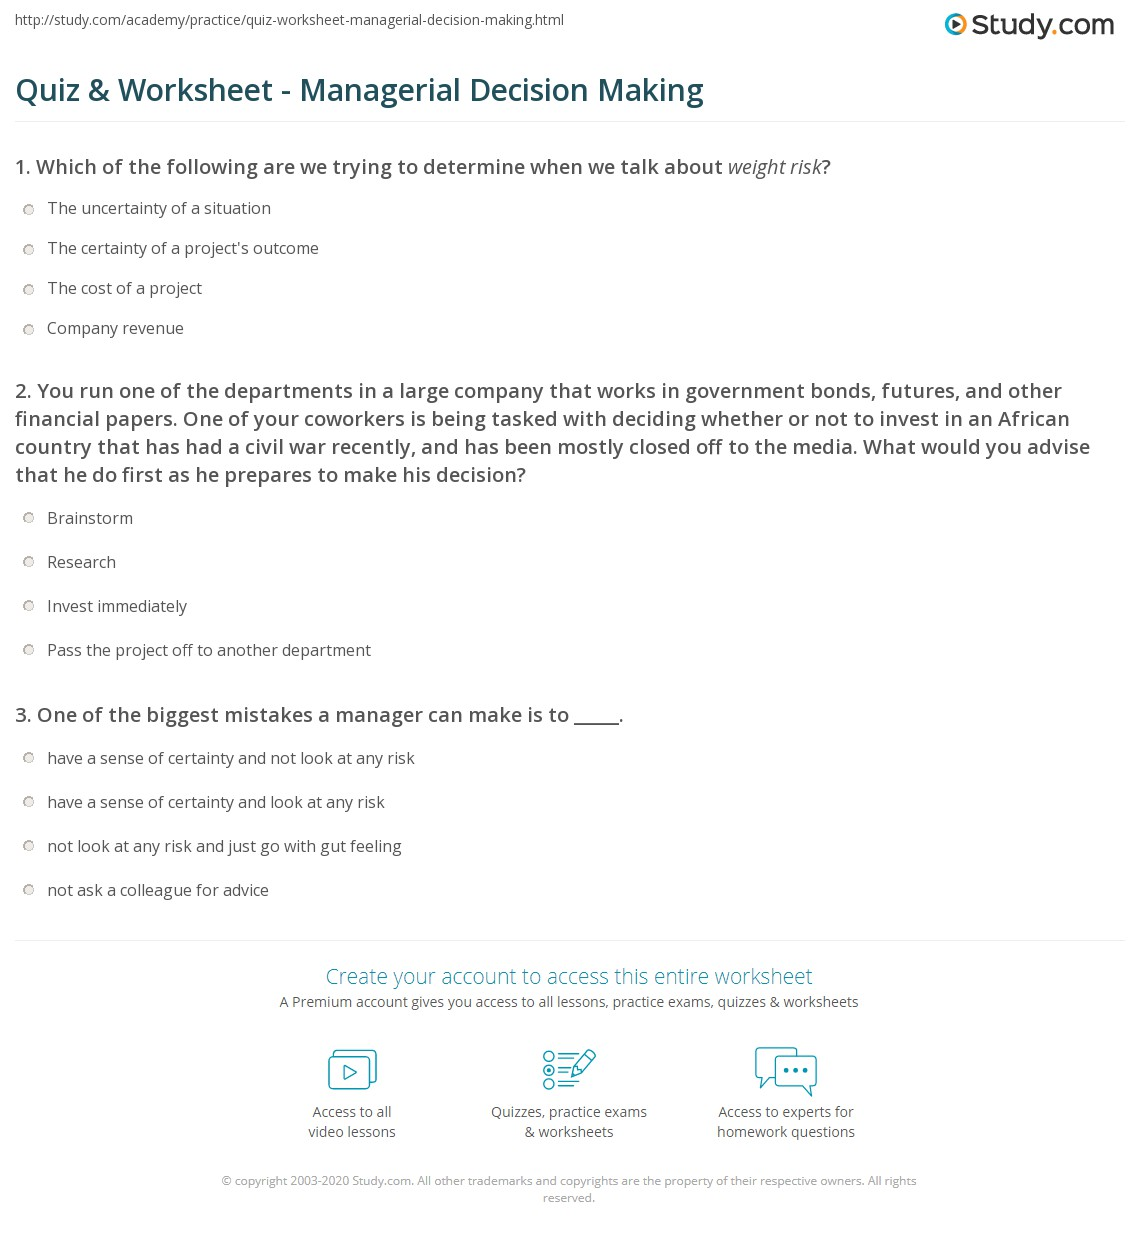 worksheet Decision Making Worksheet quiz worksheet managerial decision making study com 1 you run one of the departments in a large company that works government bonds futures and other financial papers your cowork